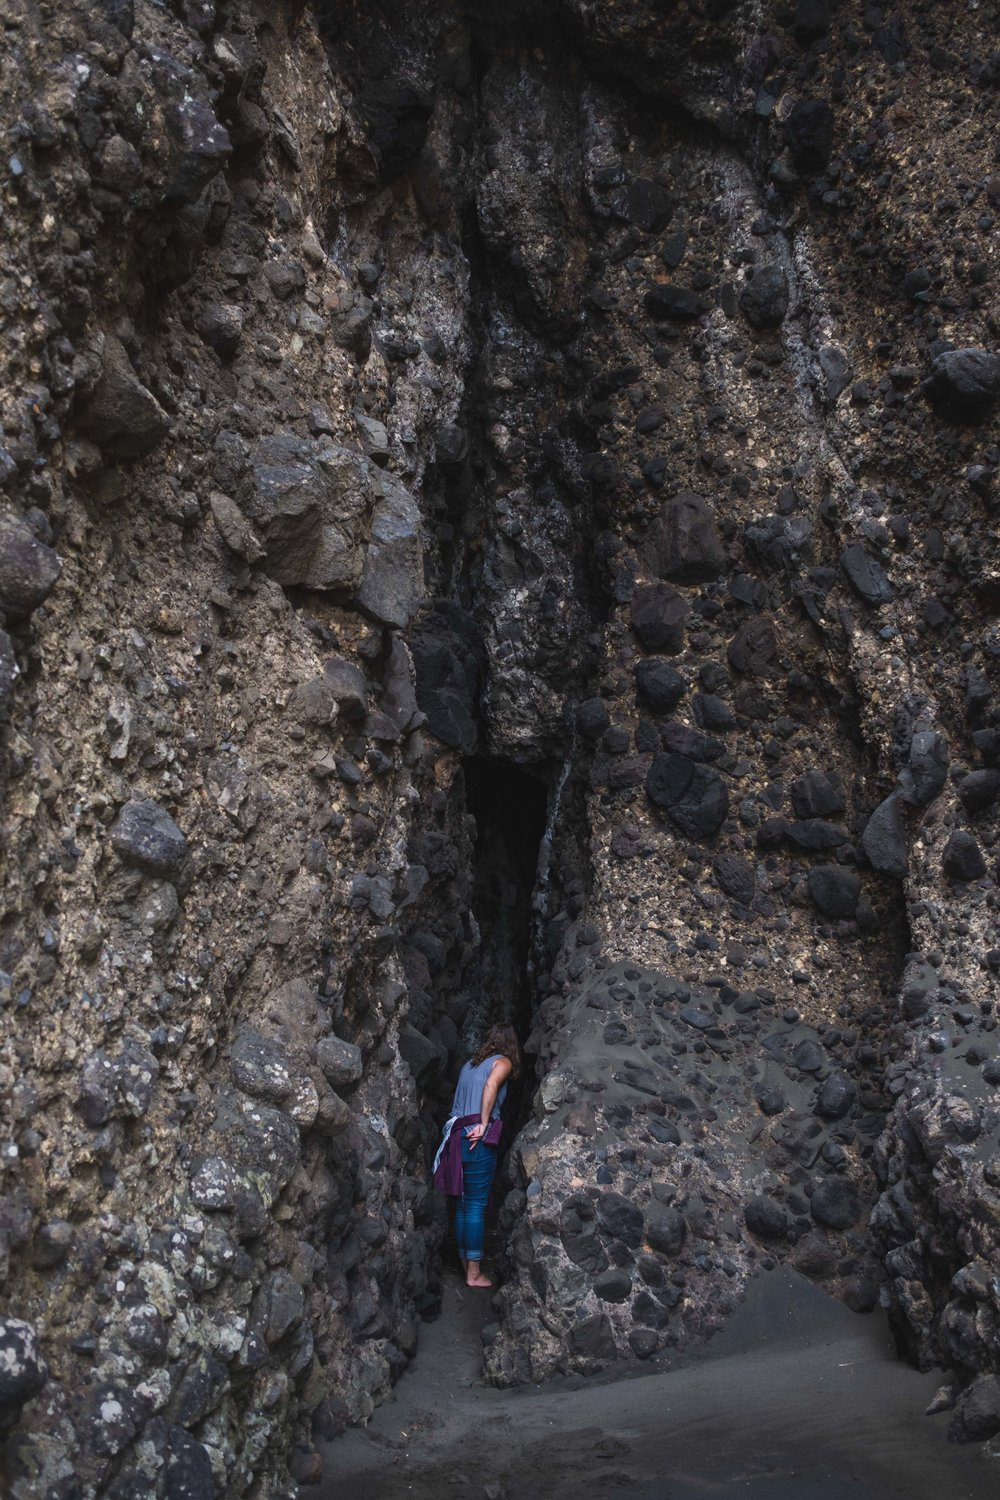 entering a weird crevice that opened up into a cave.